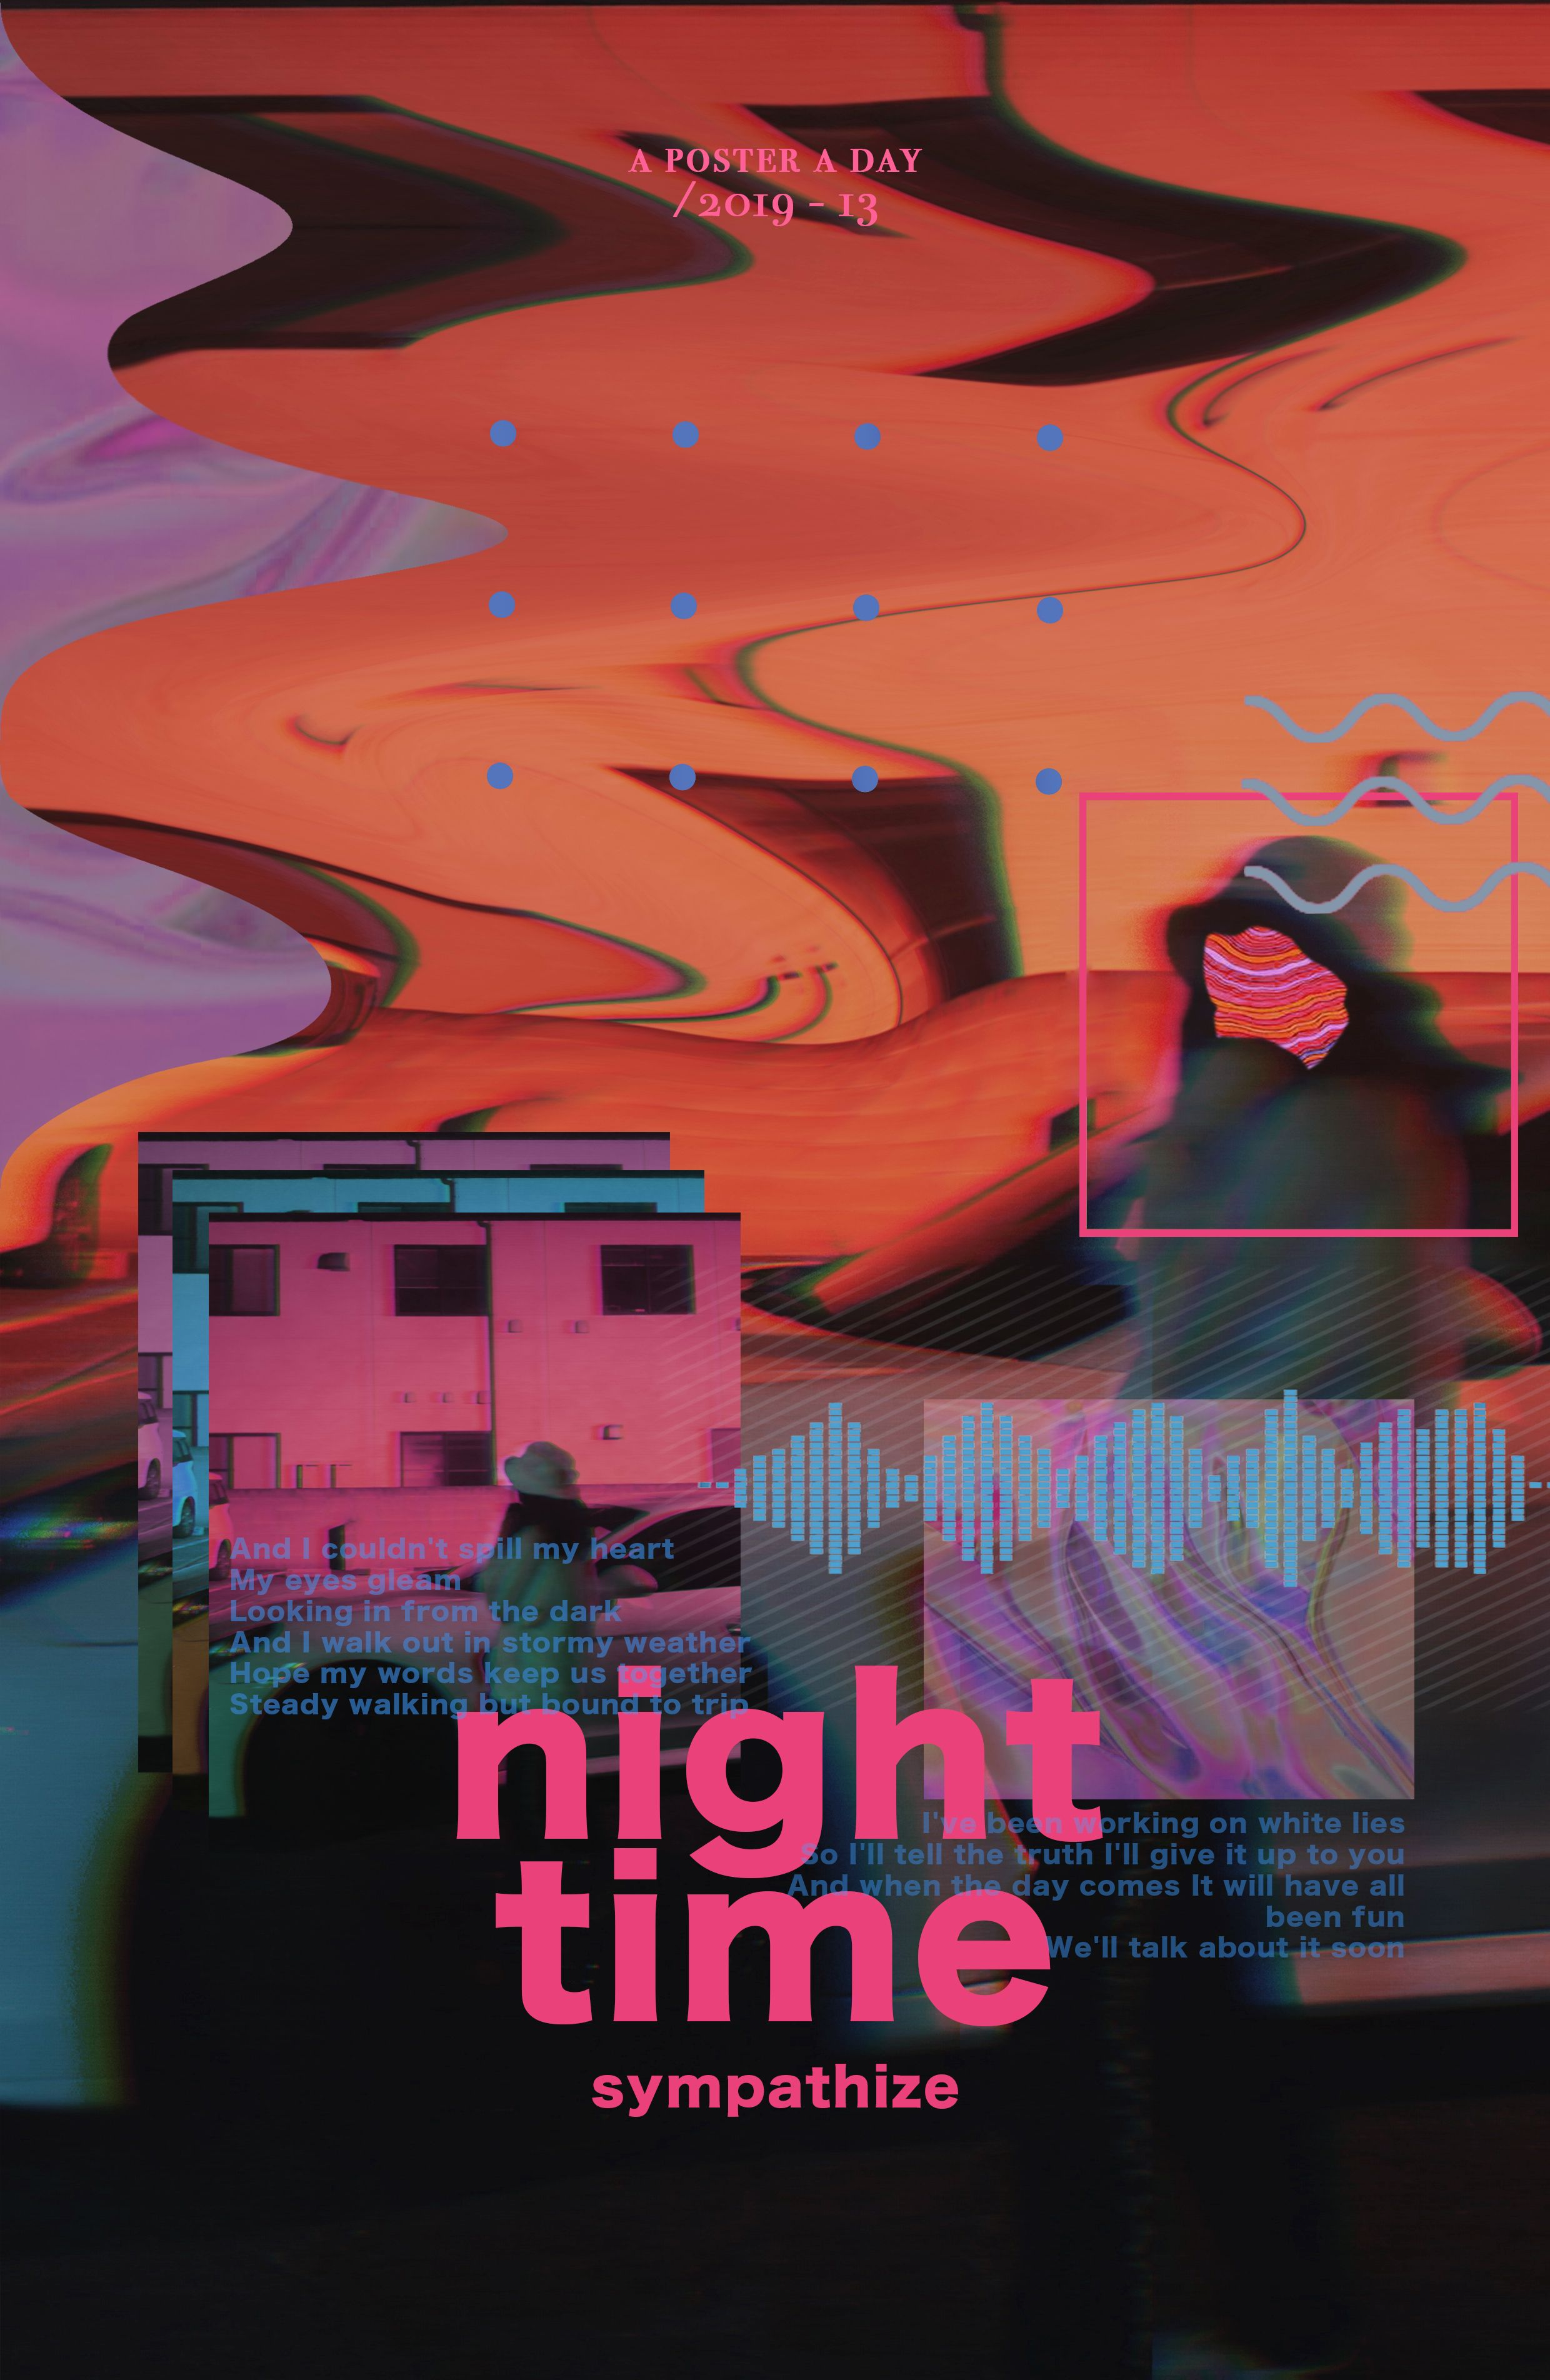 Graphic Design Graphic Art Glitch Aesthetic Night Time Women Artists Poster Visual Art Photo Ma Graphic Design Posters Digital Art Design Graphic Poster